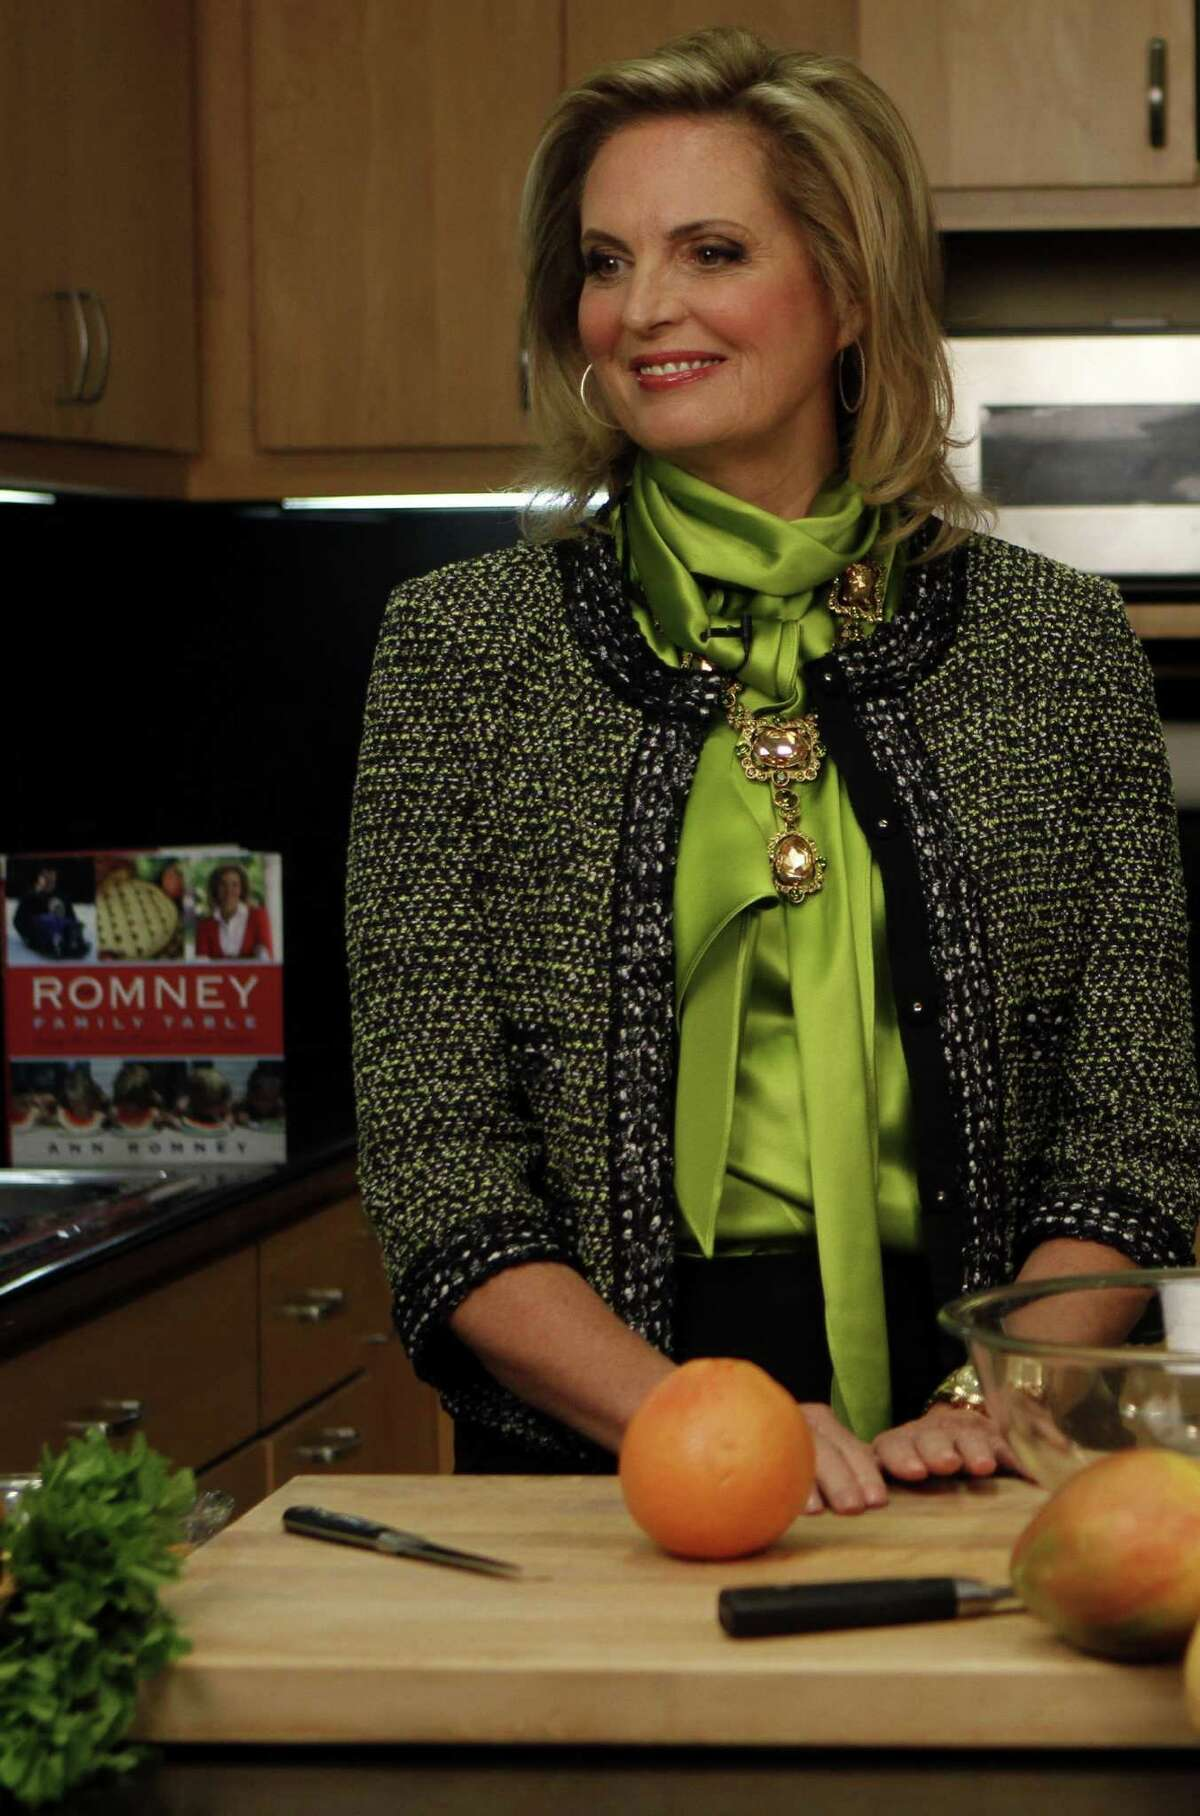 """Ann Romney, left, demonstrates recipes for her citrus salad in the Los Angeles Times' test kitchen in Los Angeles, California, on October 10, 2013. Romney has put out her first cookbook, """"The Romney Family Table."""" (Francine Orr/Los Angeles Times/MCT)"""